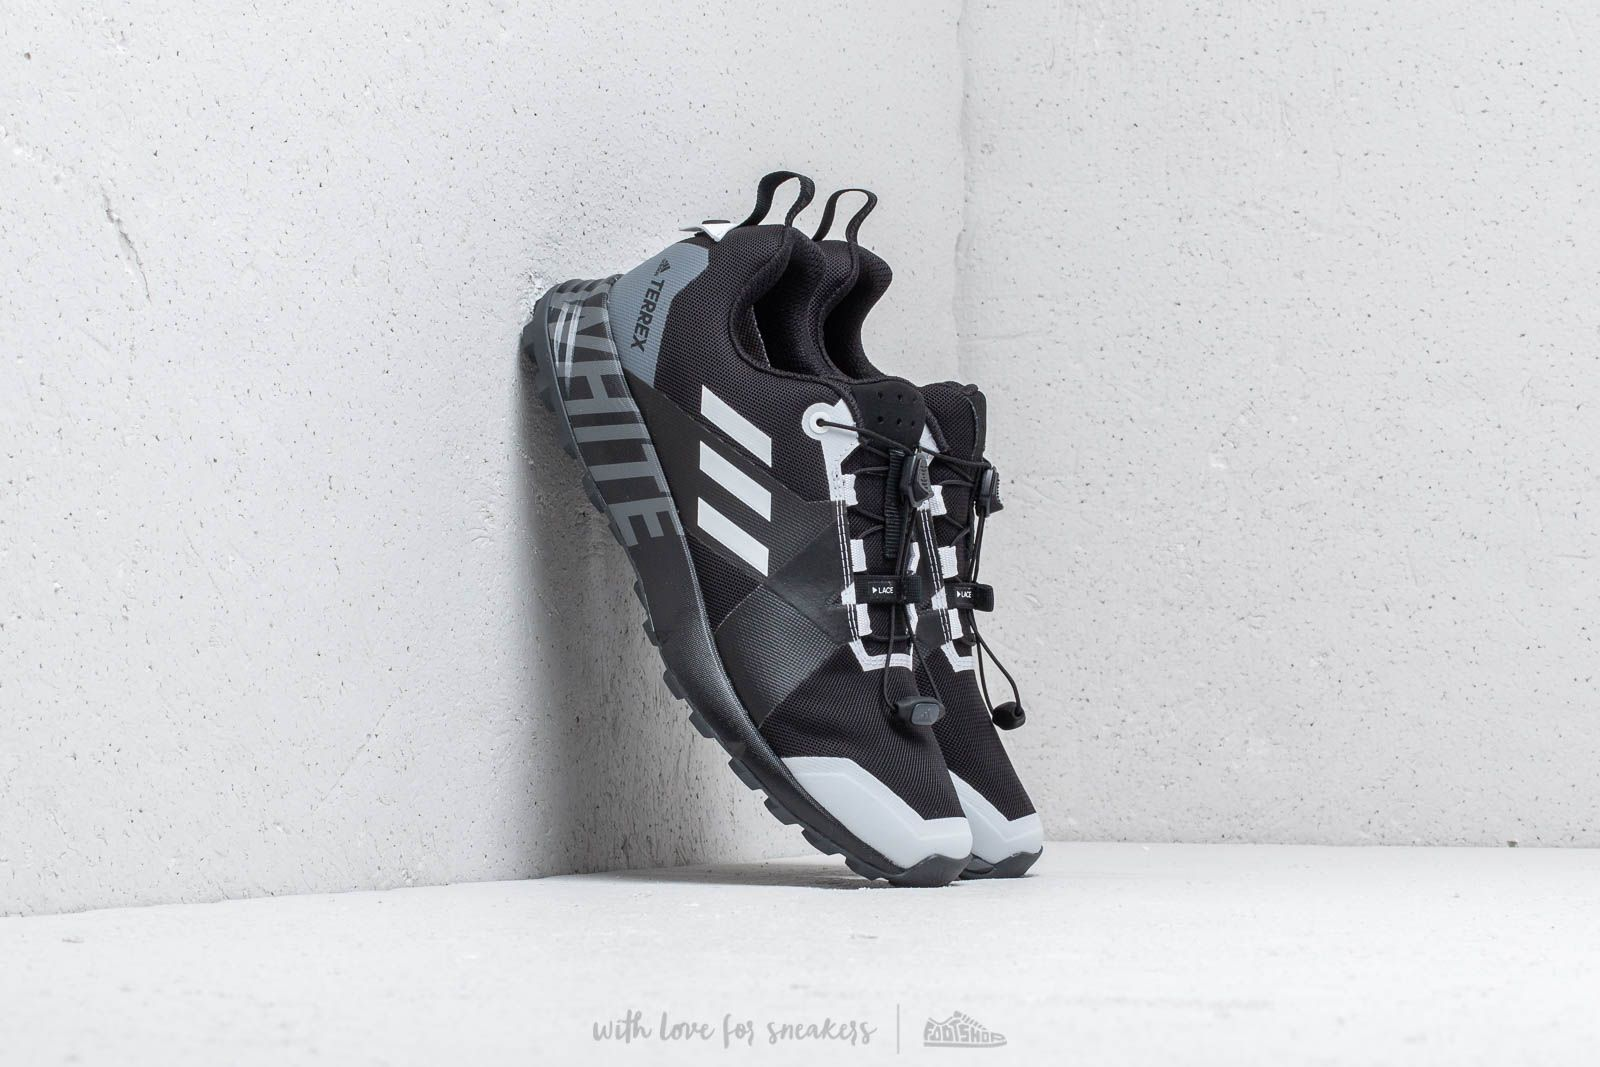 Adidas x White Mountaineering Terrex Two GTX Carbon/ Core Black/ Footwear White za skvelú cenu 133 € kúpite na Footshop.sk